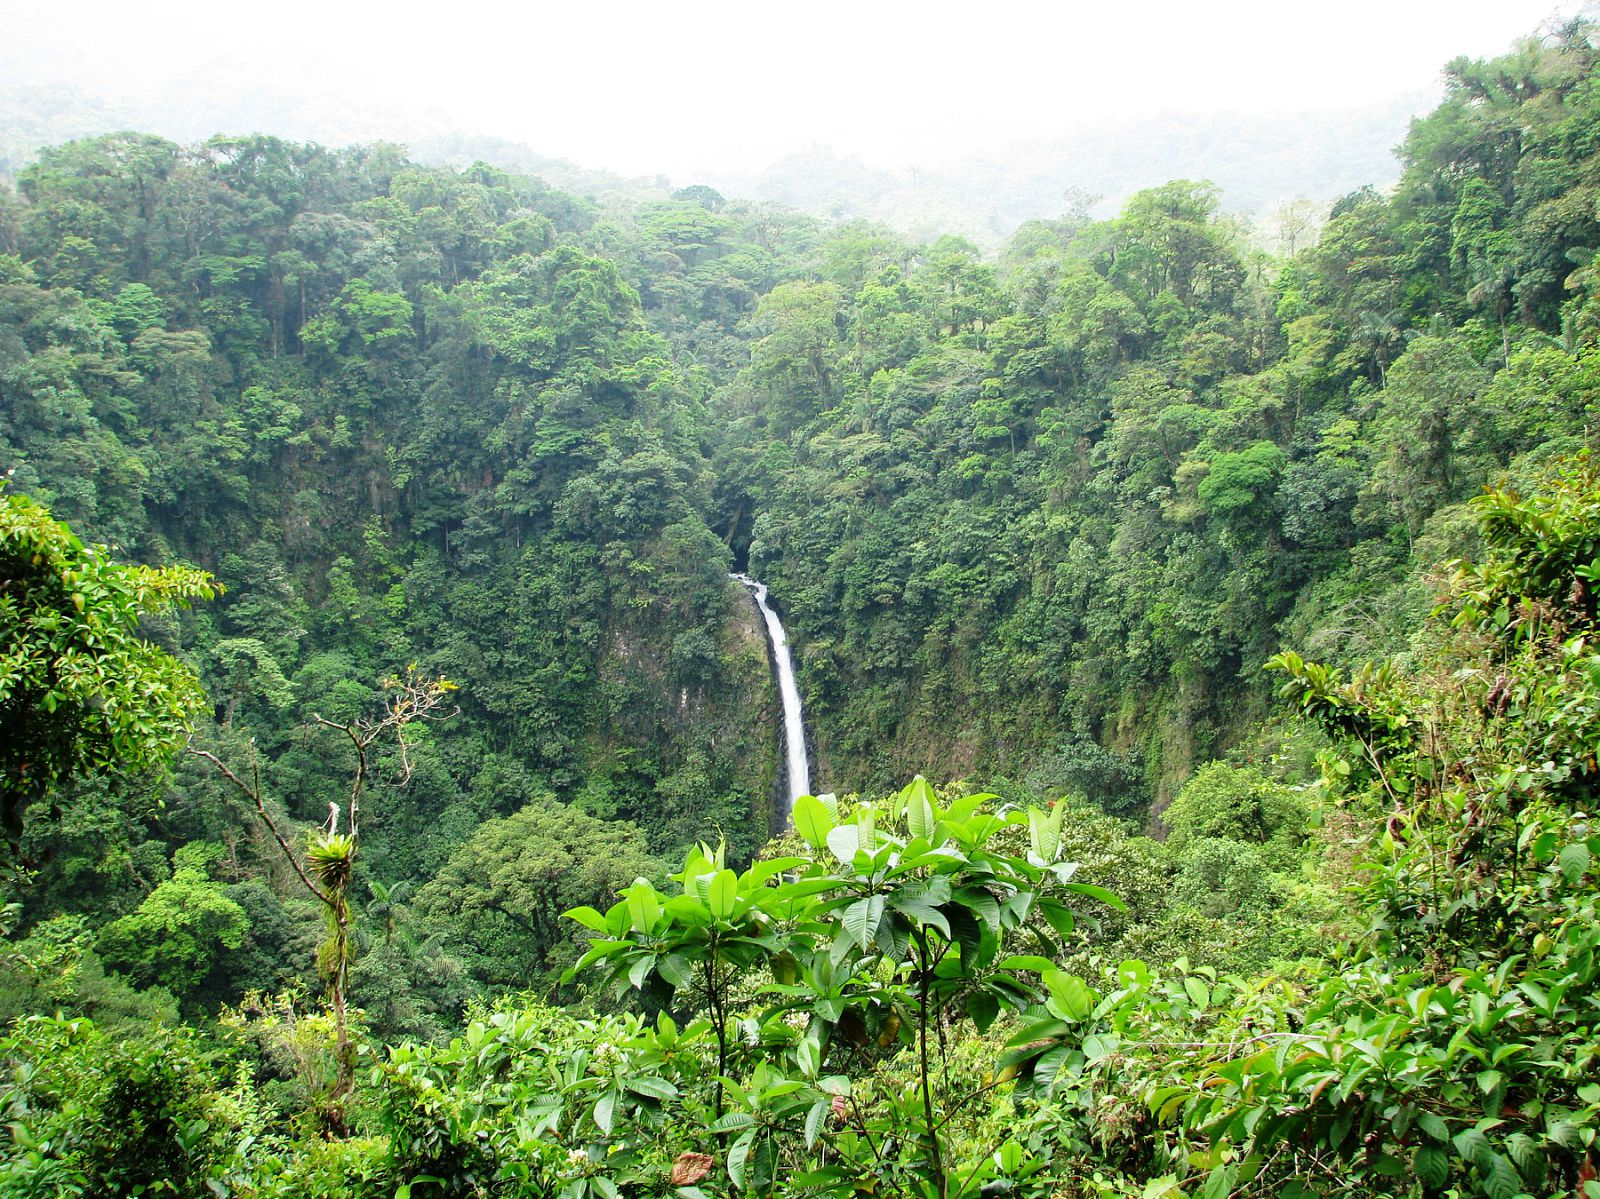 Overlook of a lush green rainforest with waterfall on an overcast day